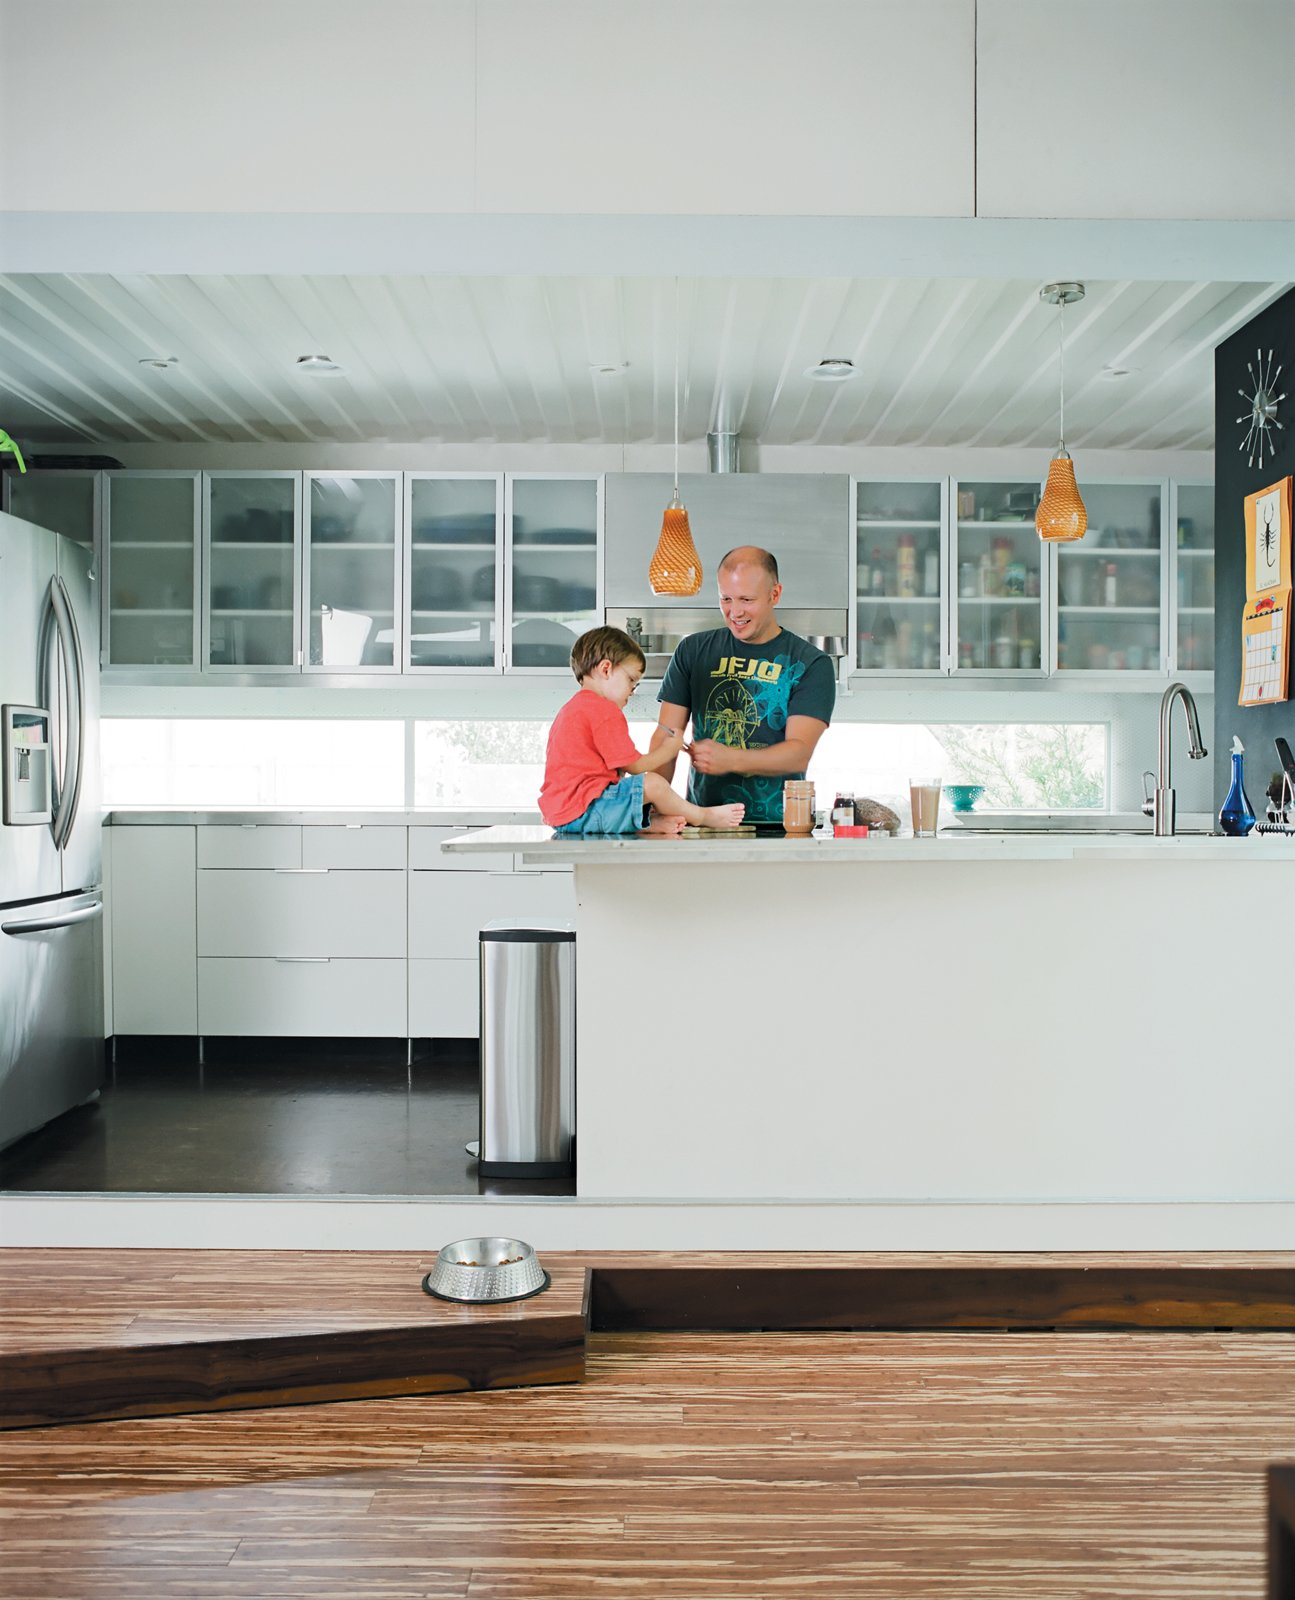 Kitchen and White Cabinet In the kitchen proper, Freeman fixes a snack while son Eli plays on the counter, one of his favorite spots in the house, second only to the kitchen steps.  Shipping Containers by Dwell